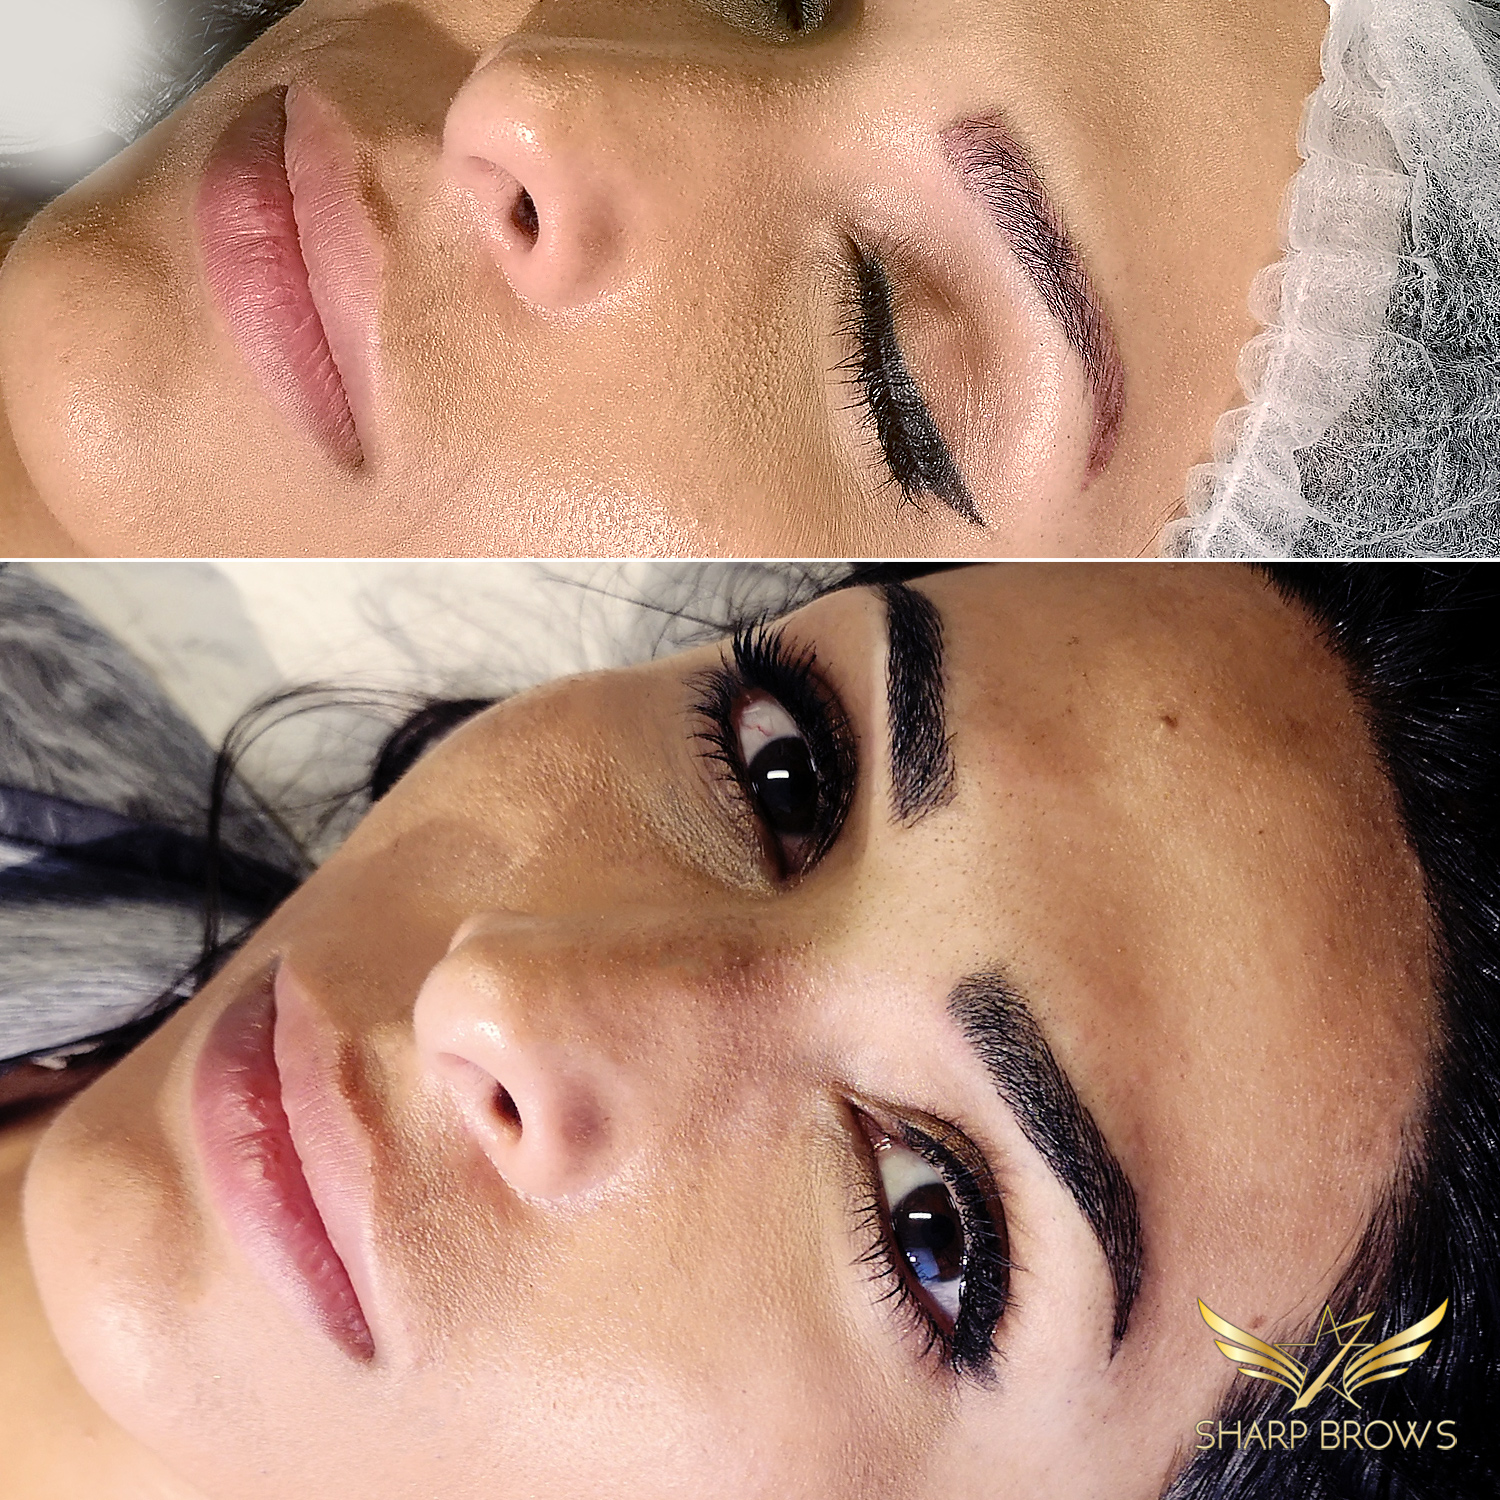 Light microblading - Pretty typical situation where an old pigmentation or tattoo has been turned into a beautiful Light microblading brow.